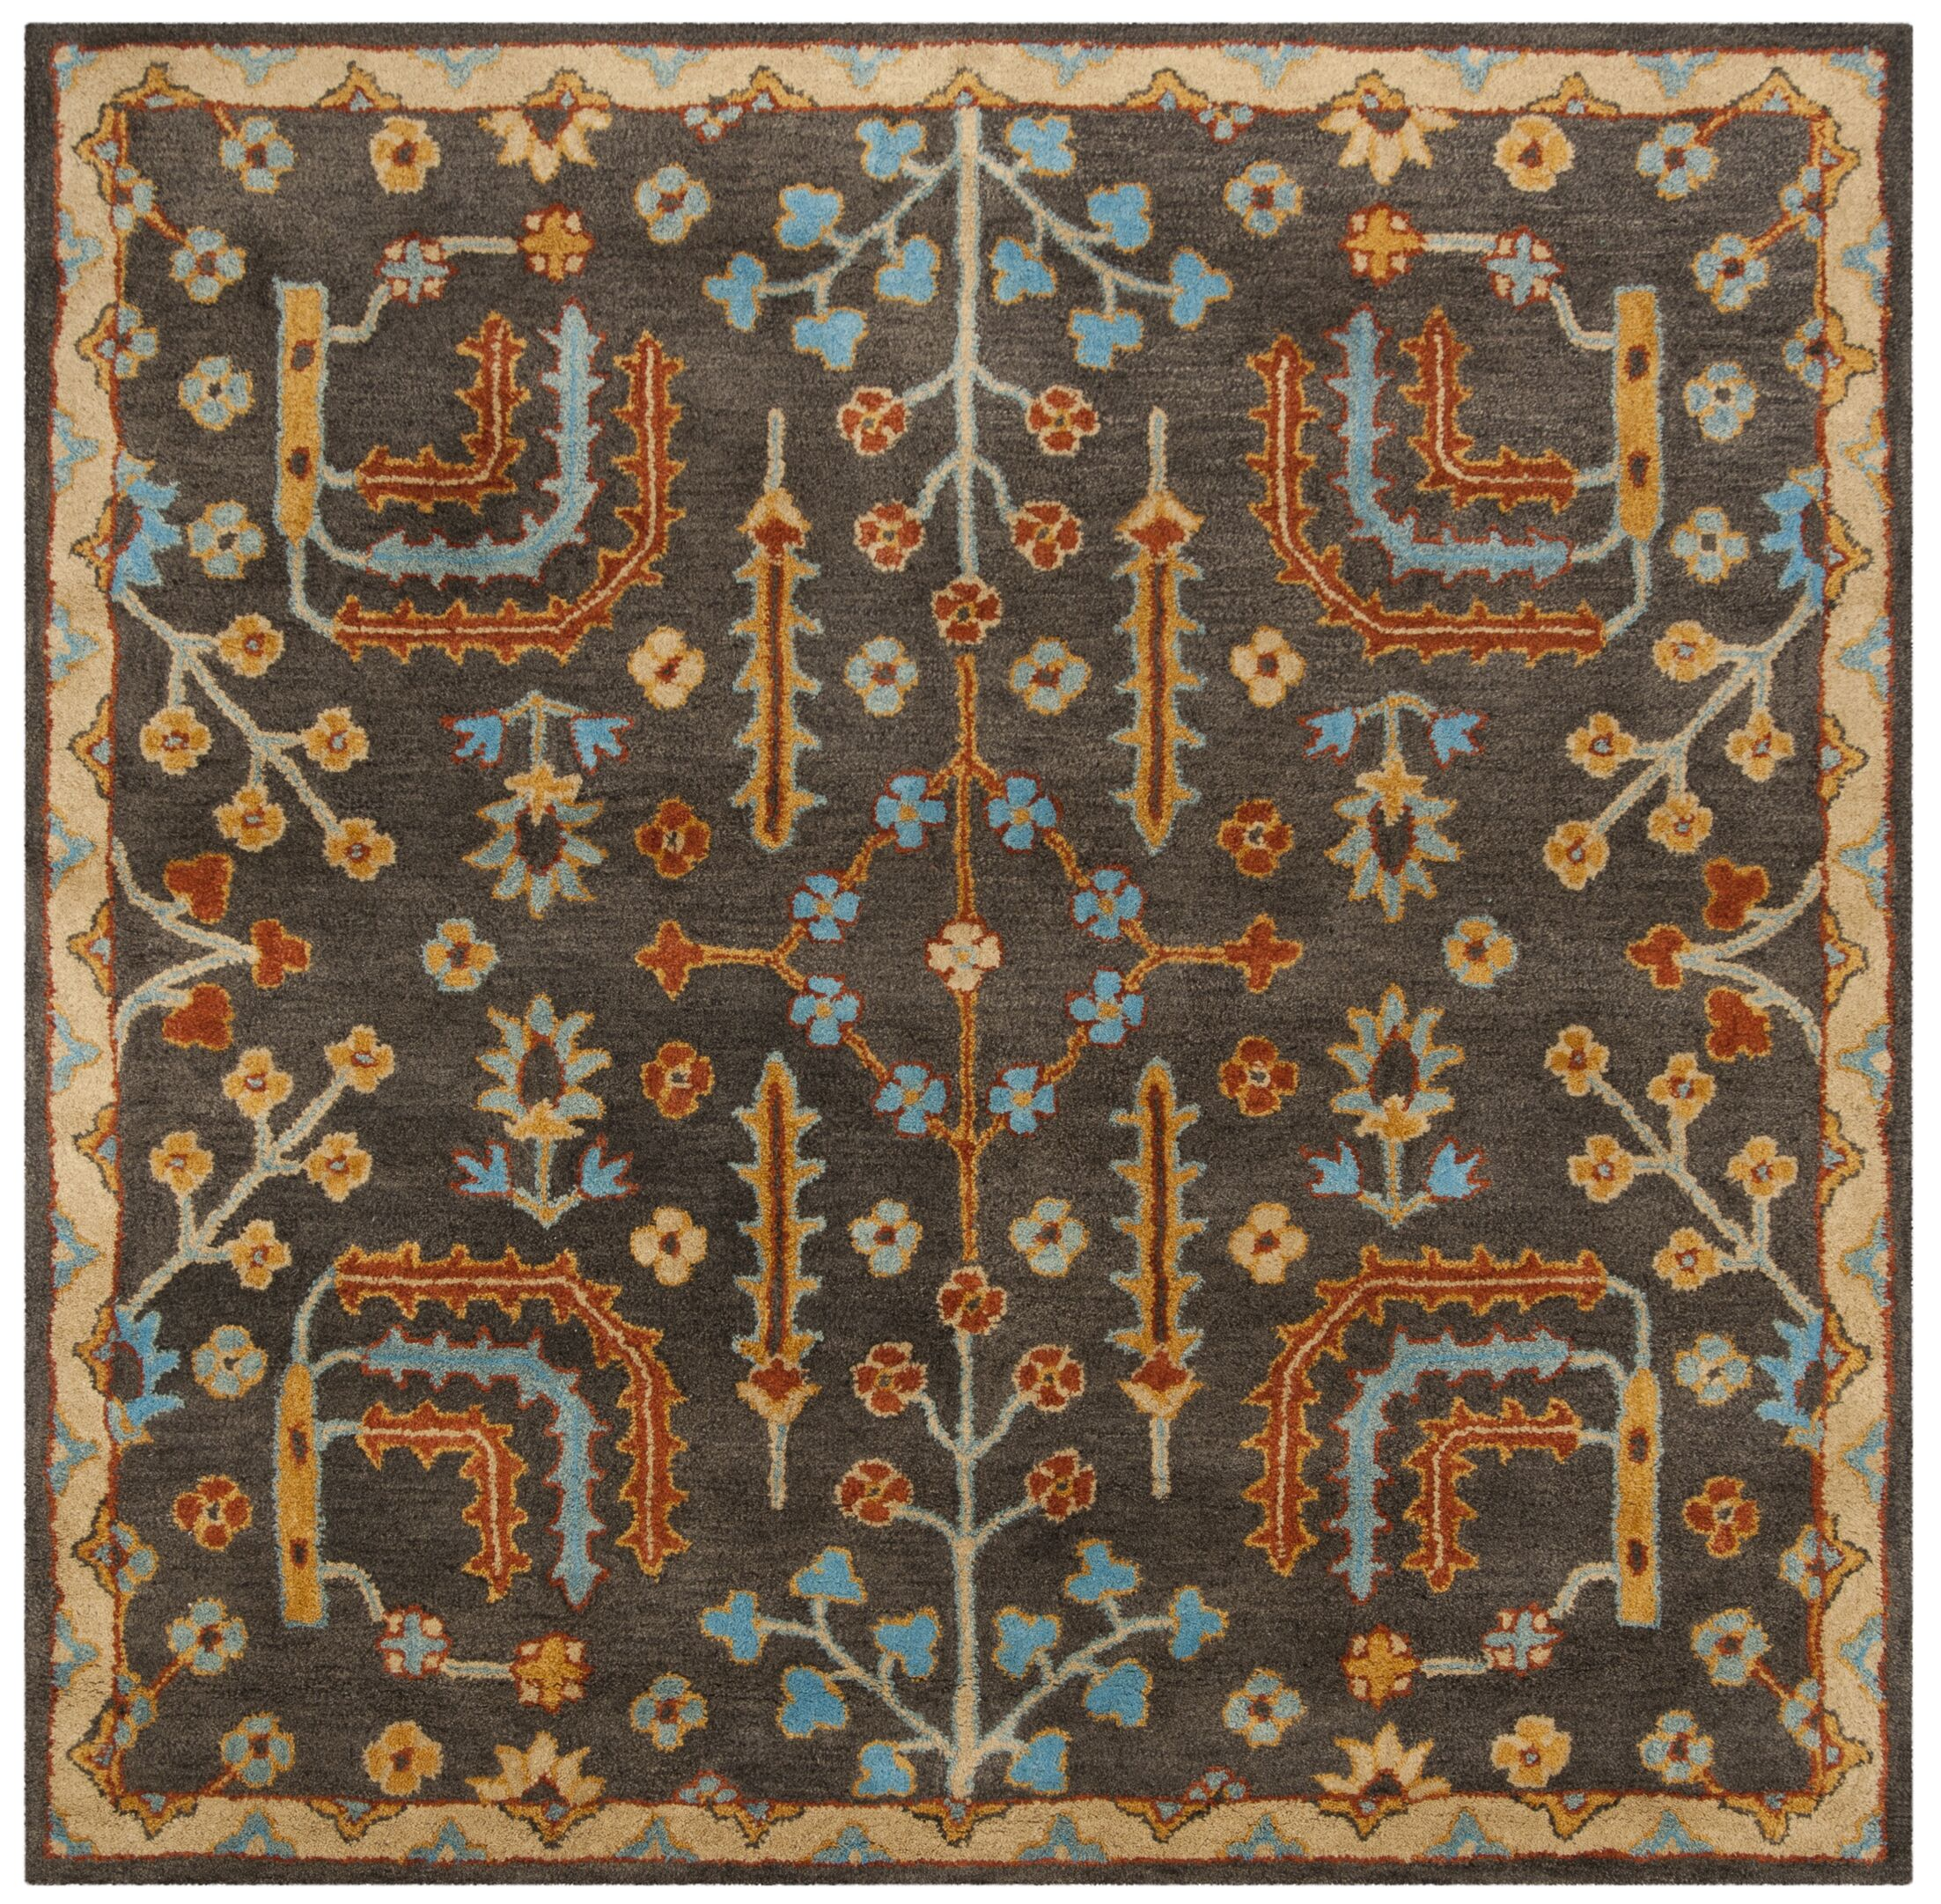 Boyd Hand-Tufted Multi-Color Area Rug Rug Size: Square 8'